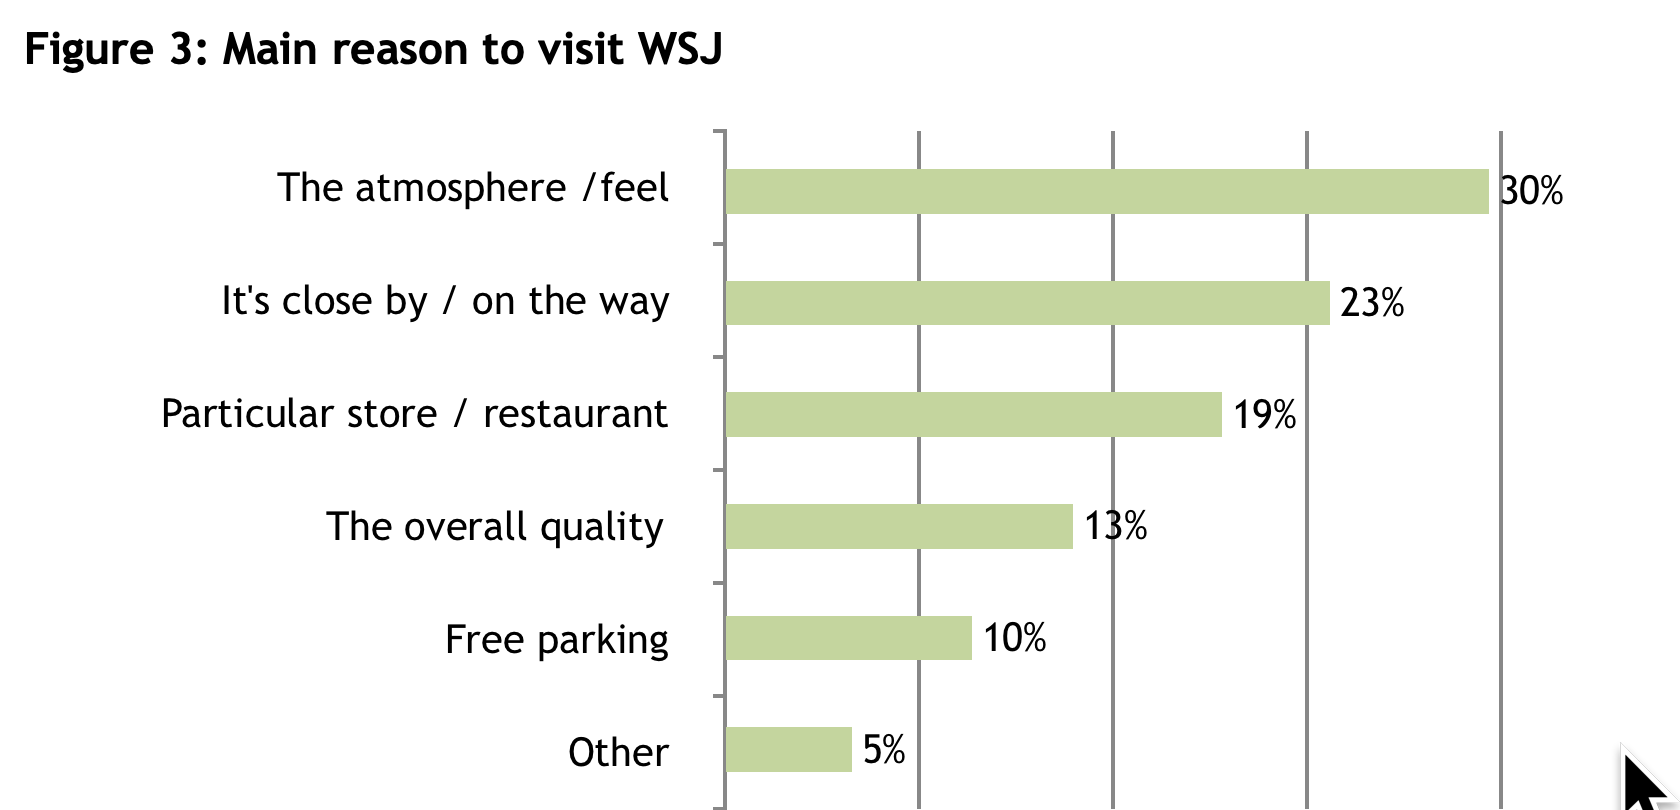 main reason for visit